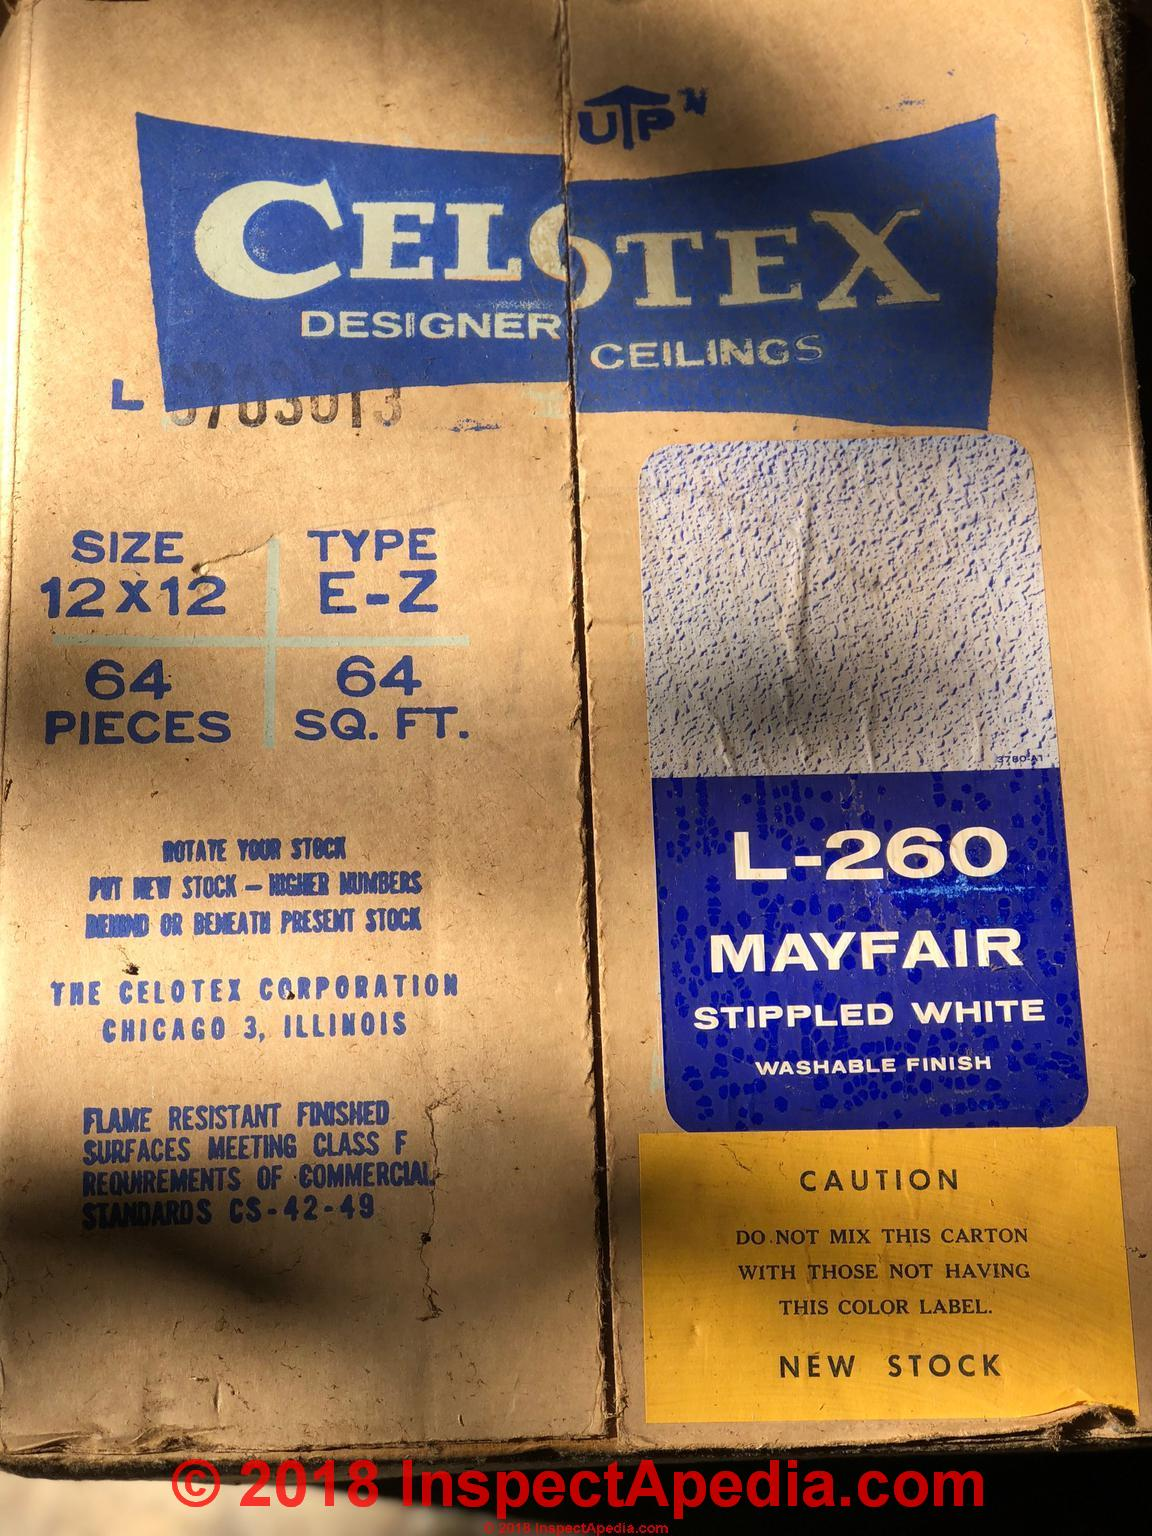 Celotex Insulating Products Believed To Contain Asbestos Or To Be